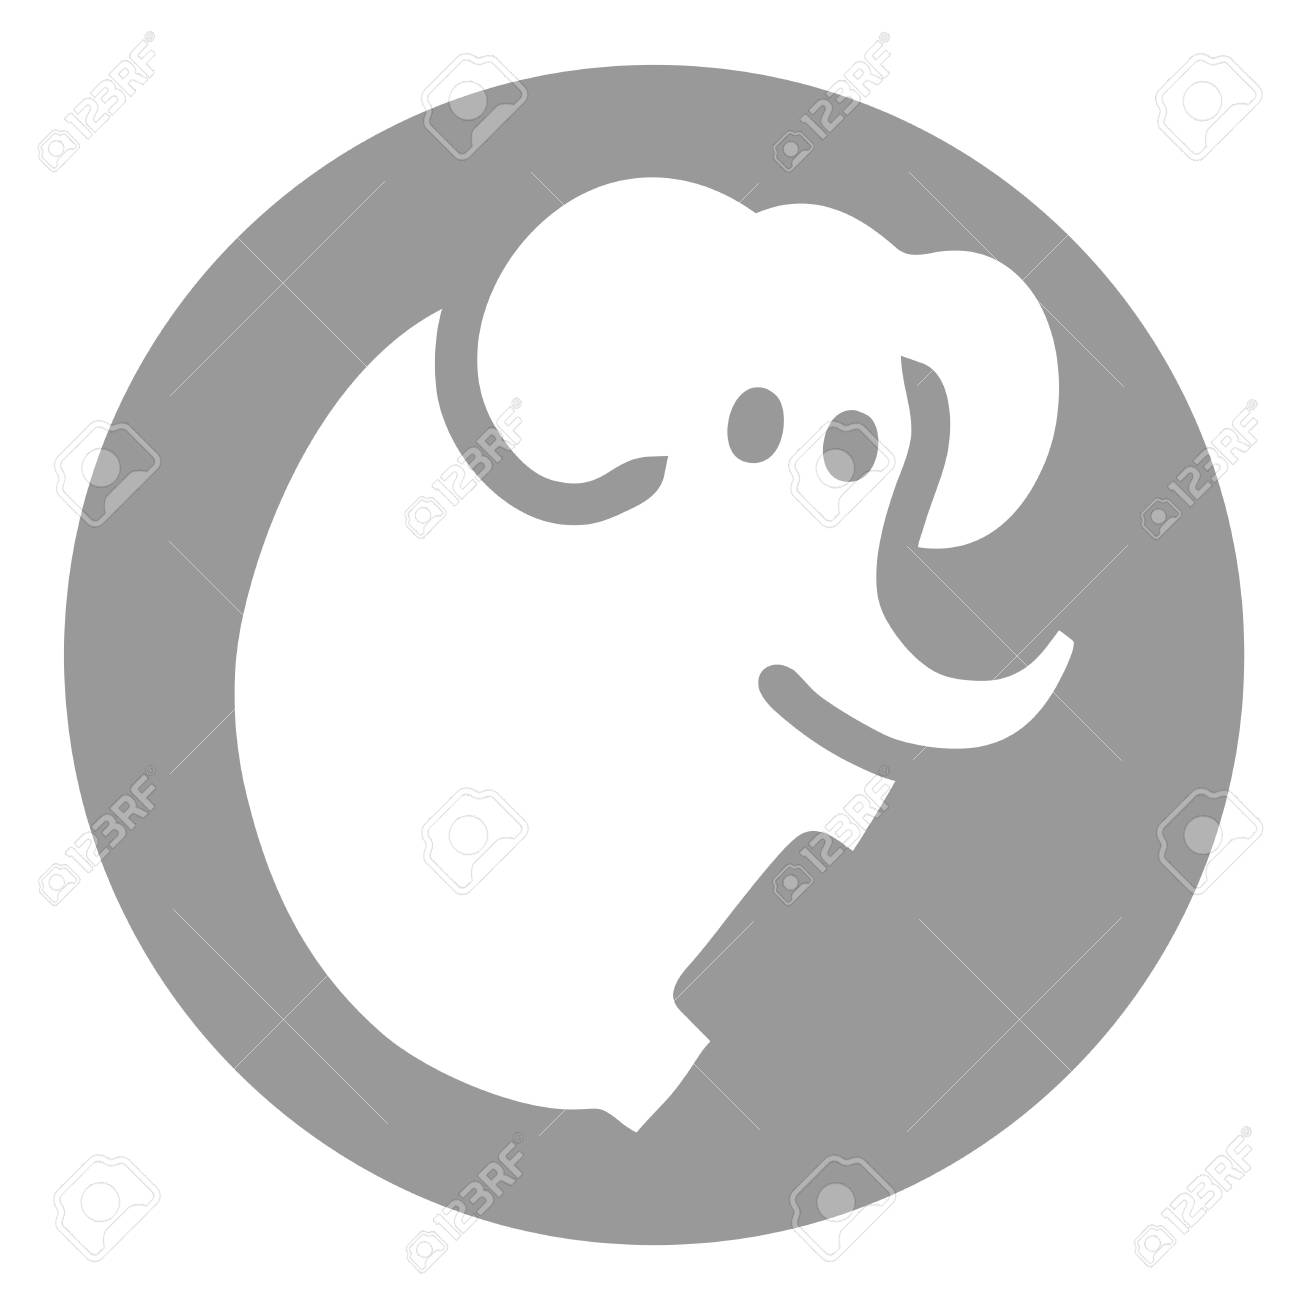 Small animal Stock Vector - 17946339